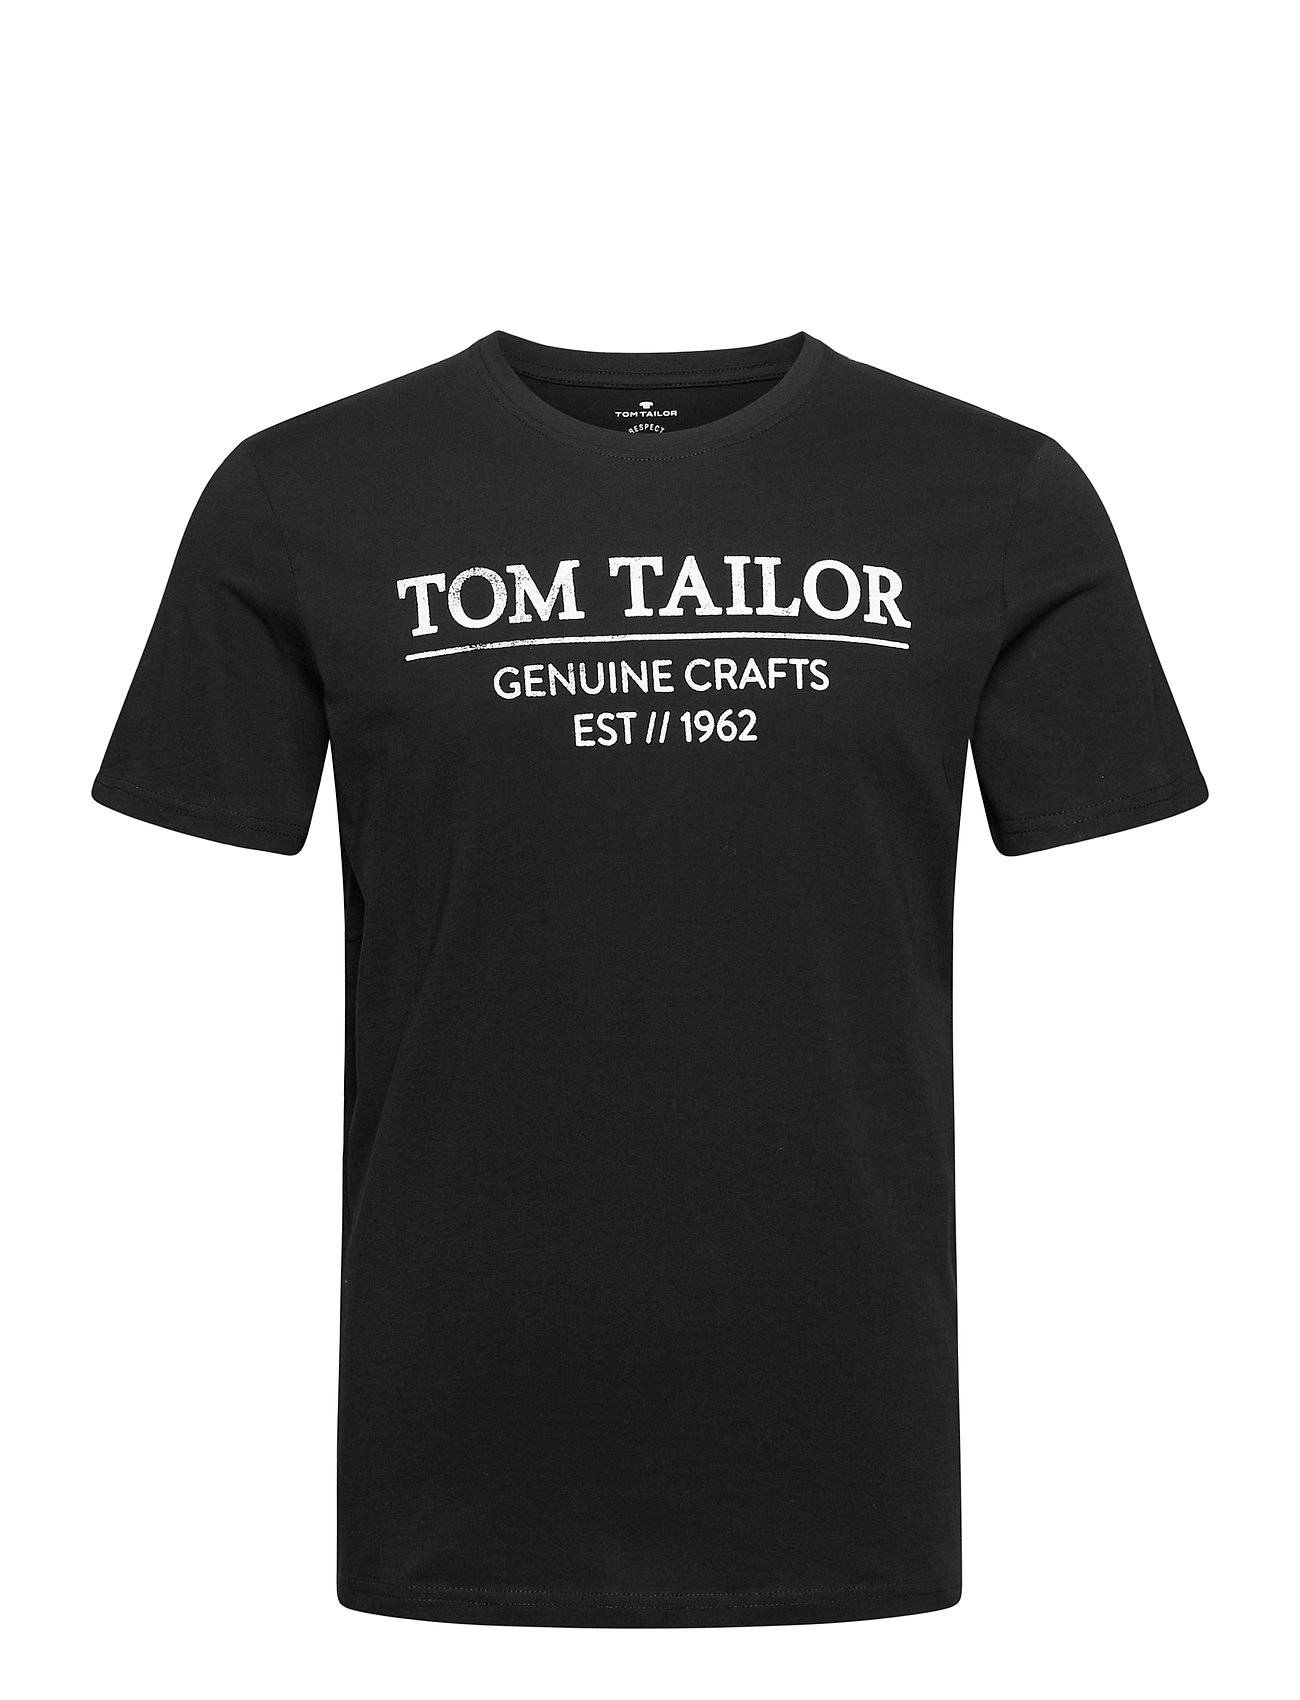 Tom Tailor T-Shirt With T-shirts Short-sleeved Musta Tom Tailor